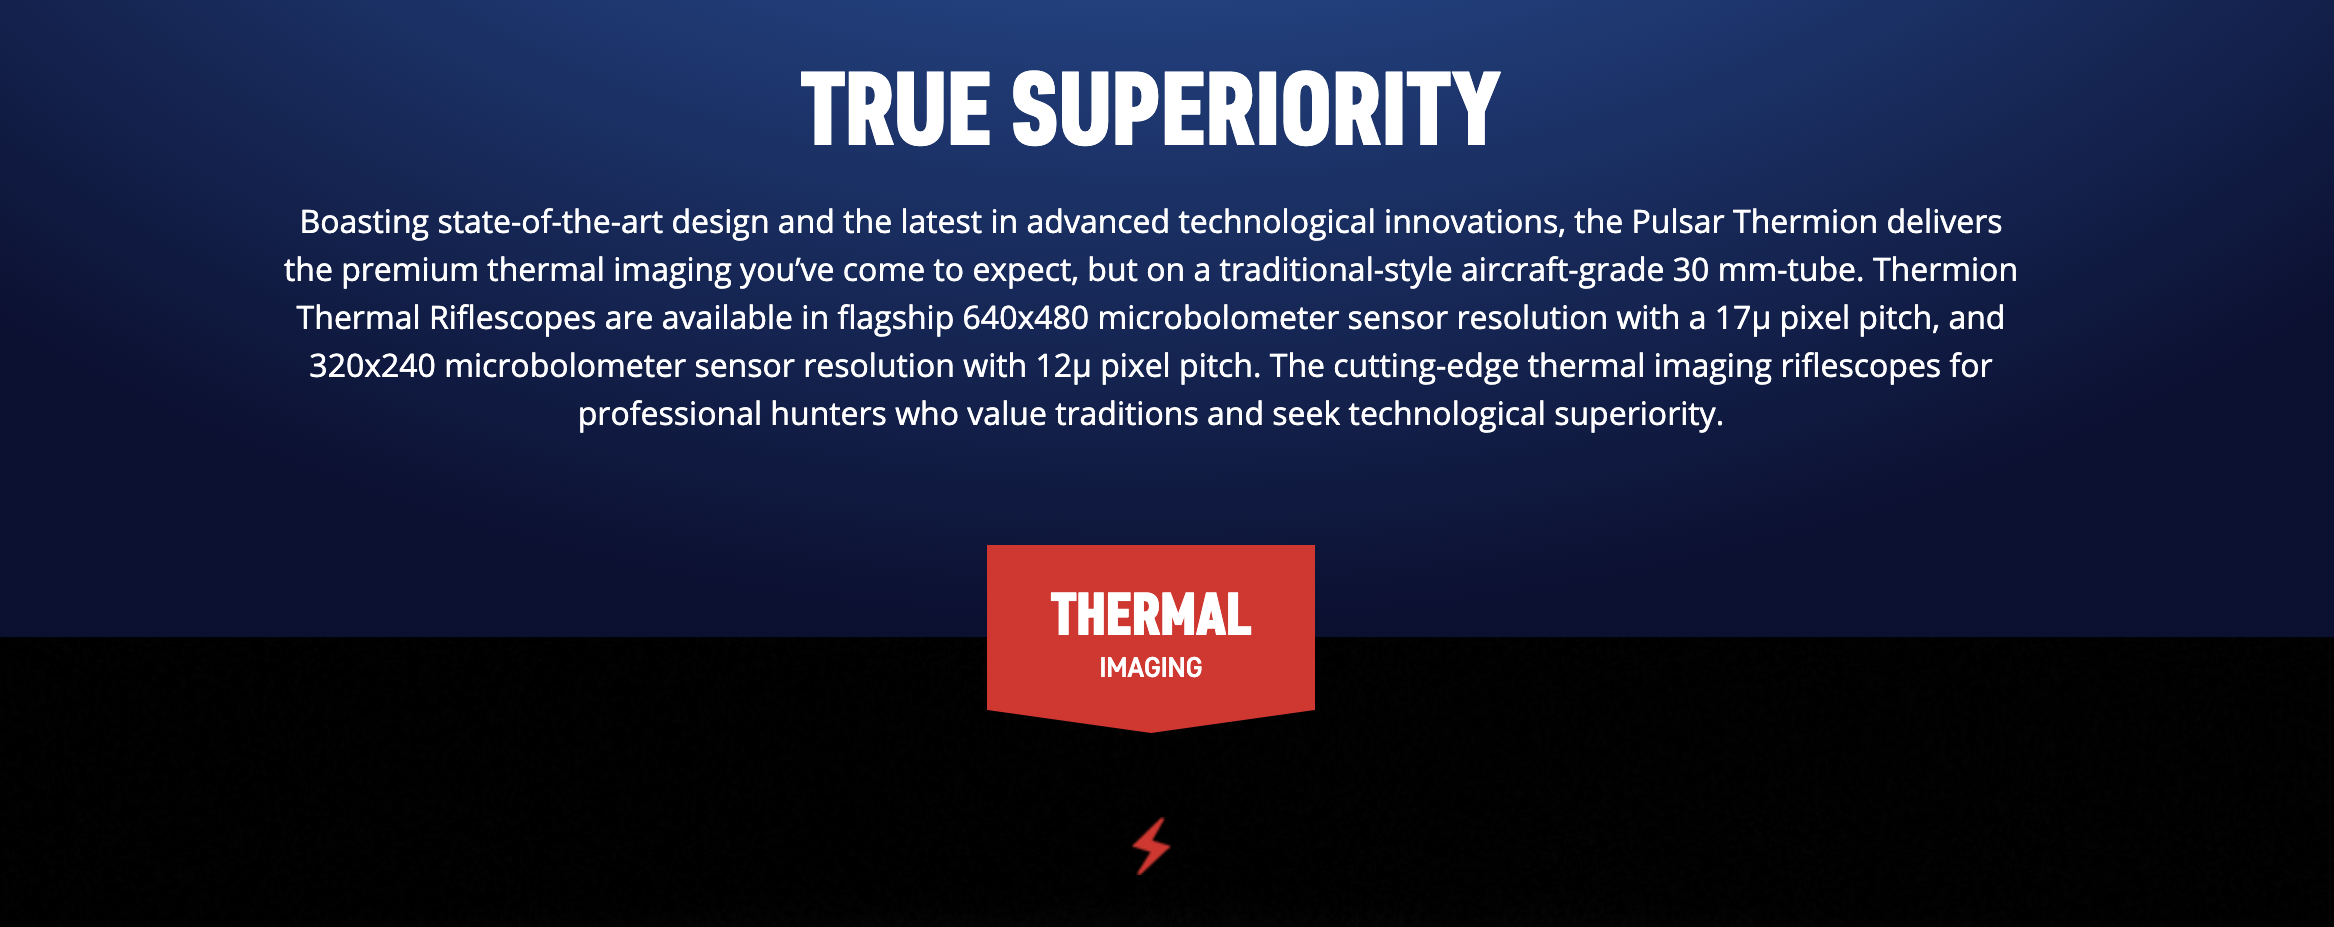 True Superiority Thermion